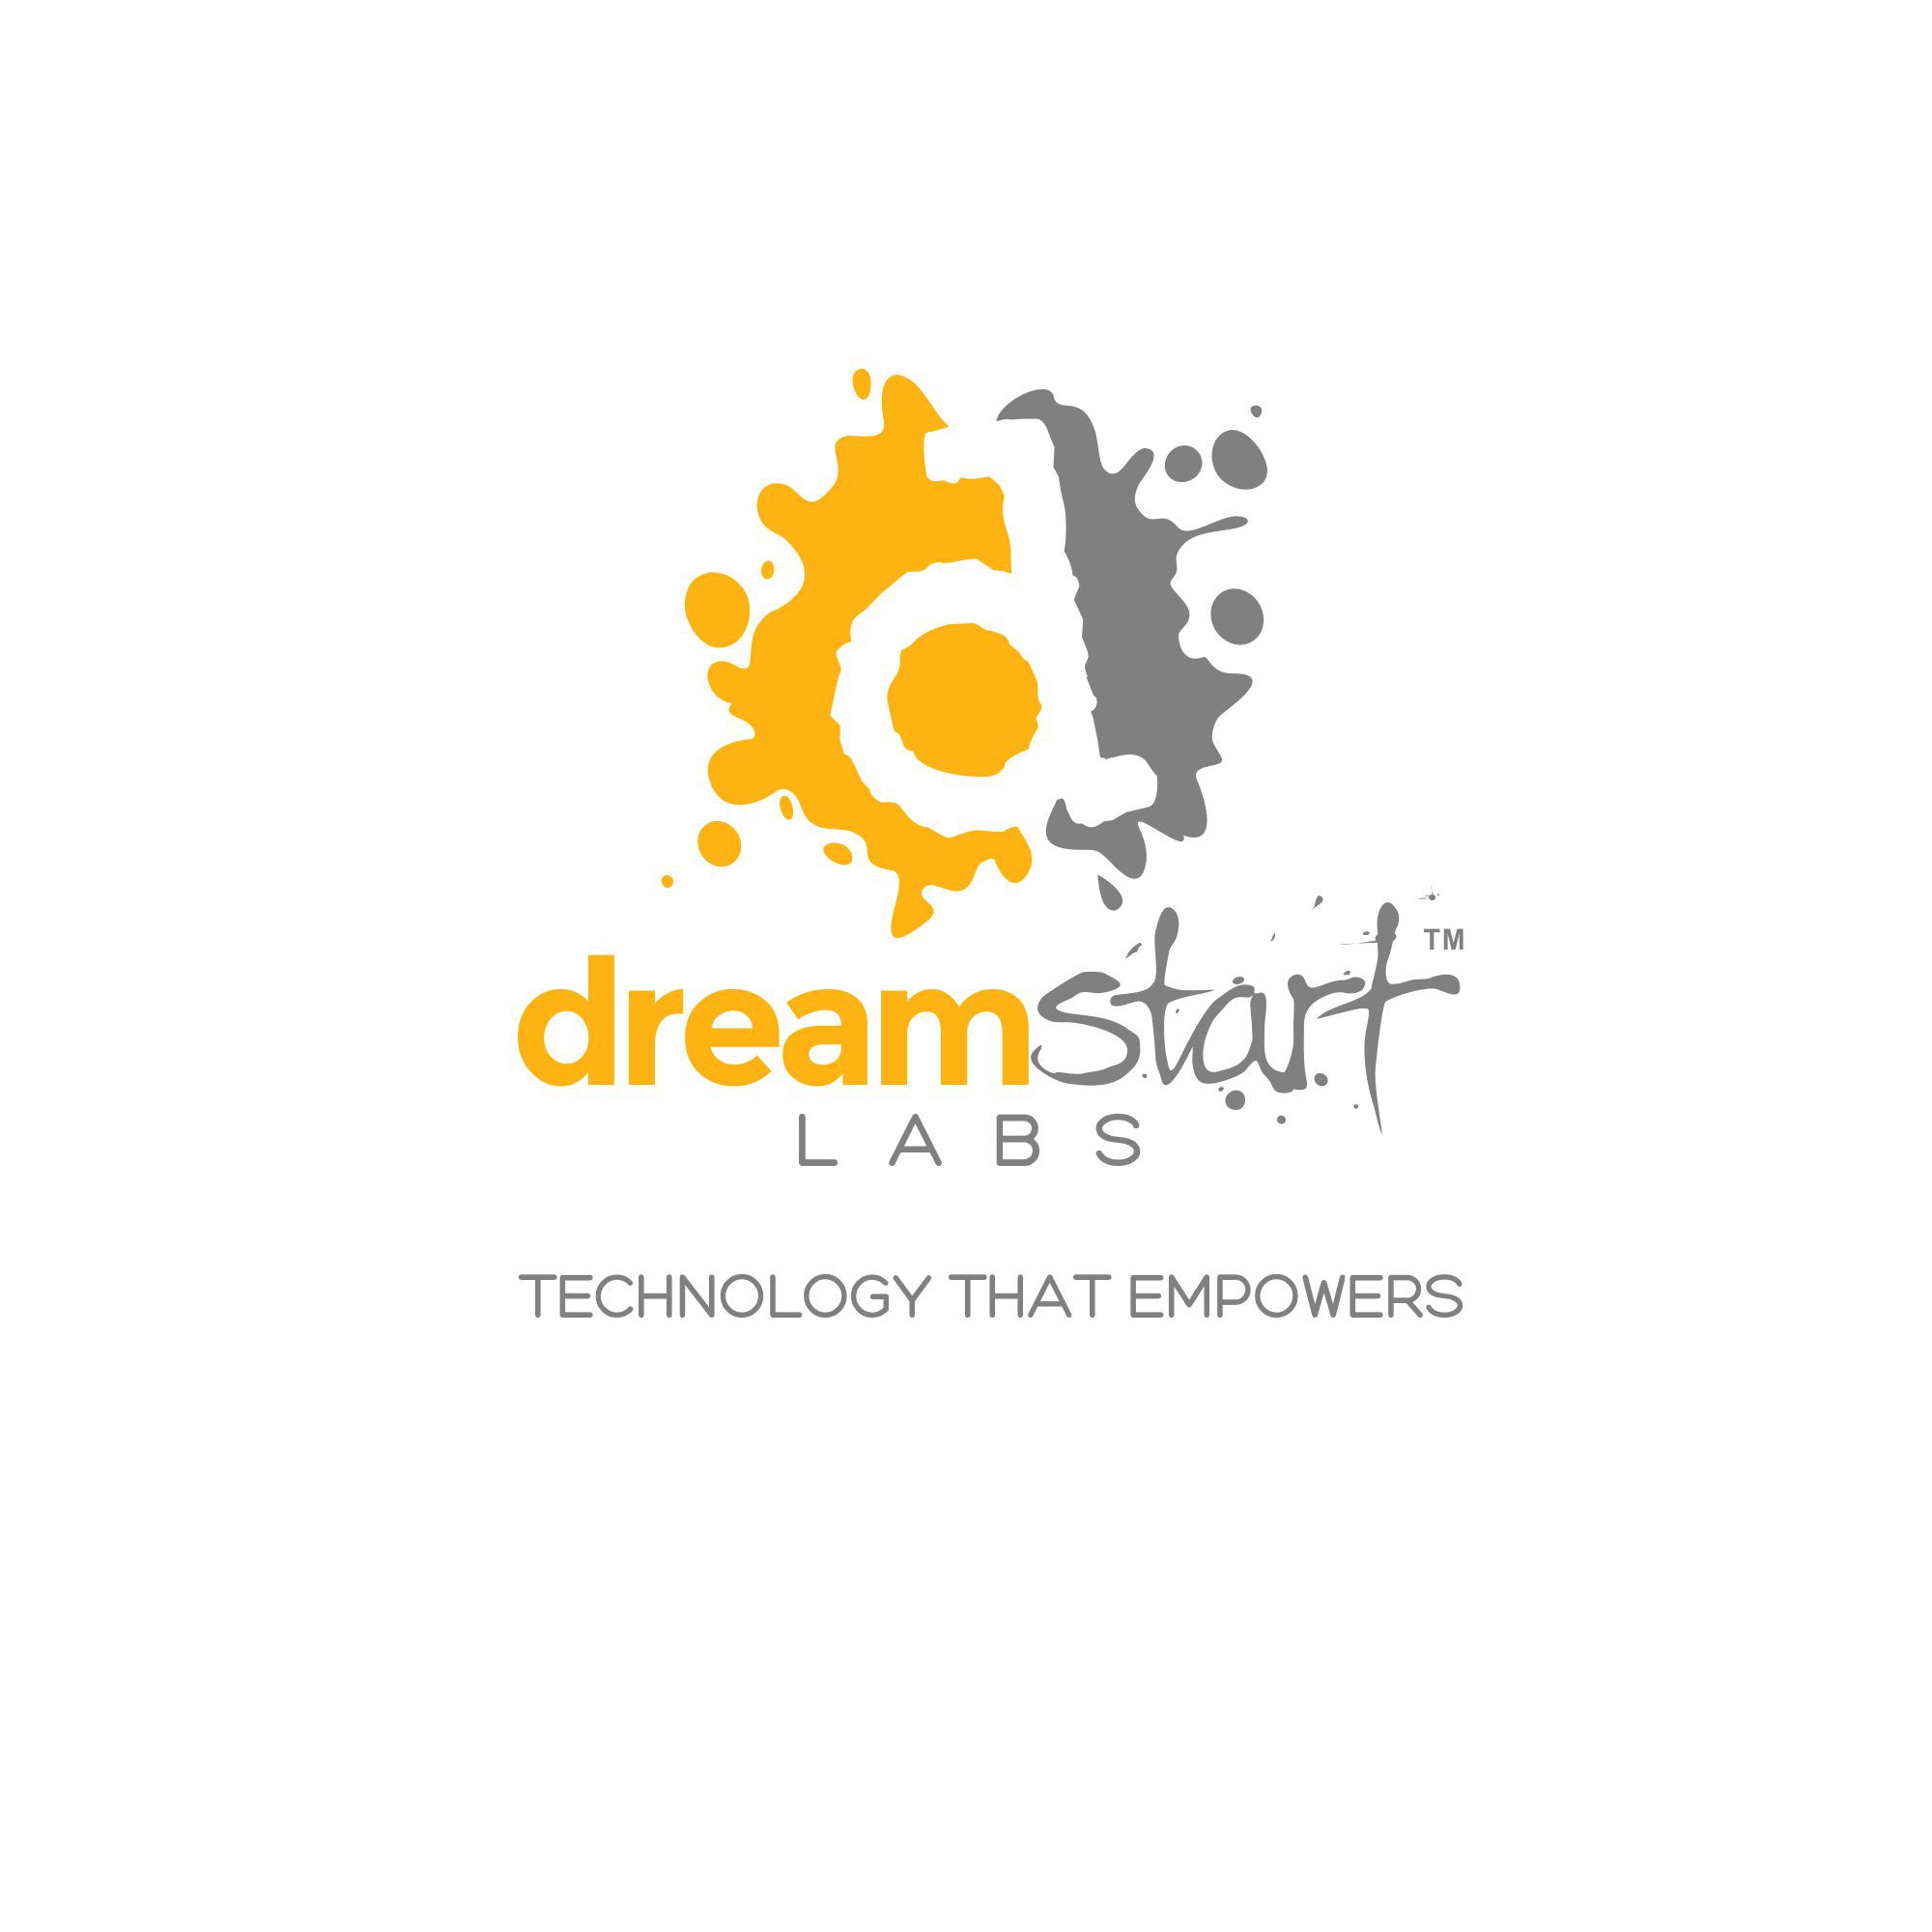 DreamStart Labs Logo - innovative new tech startup empowering people in poverty